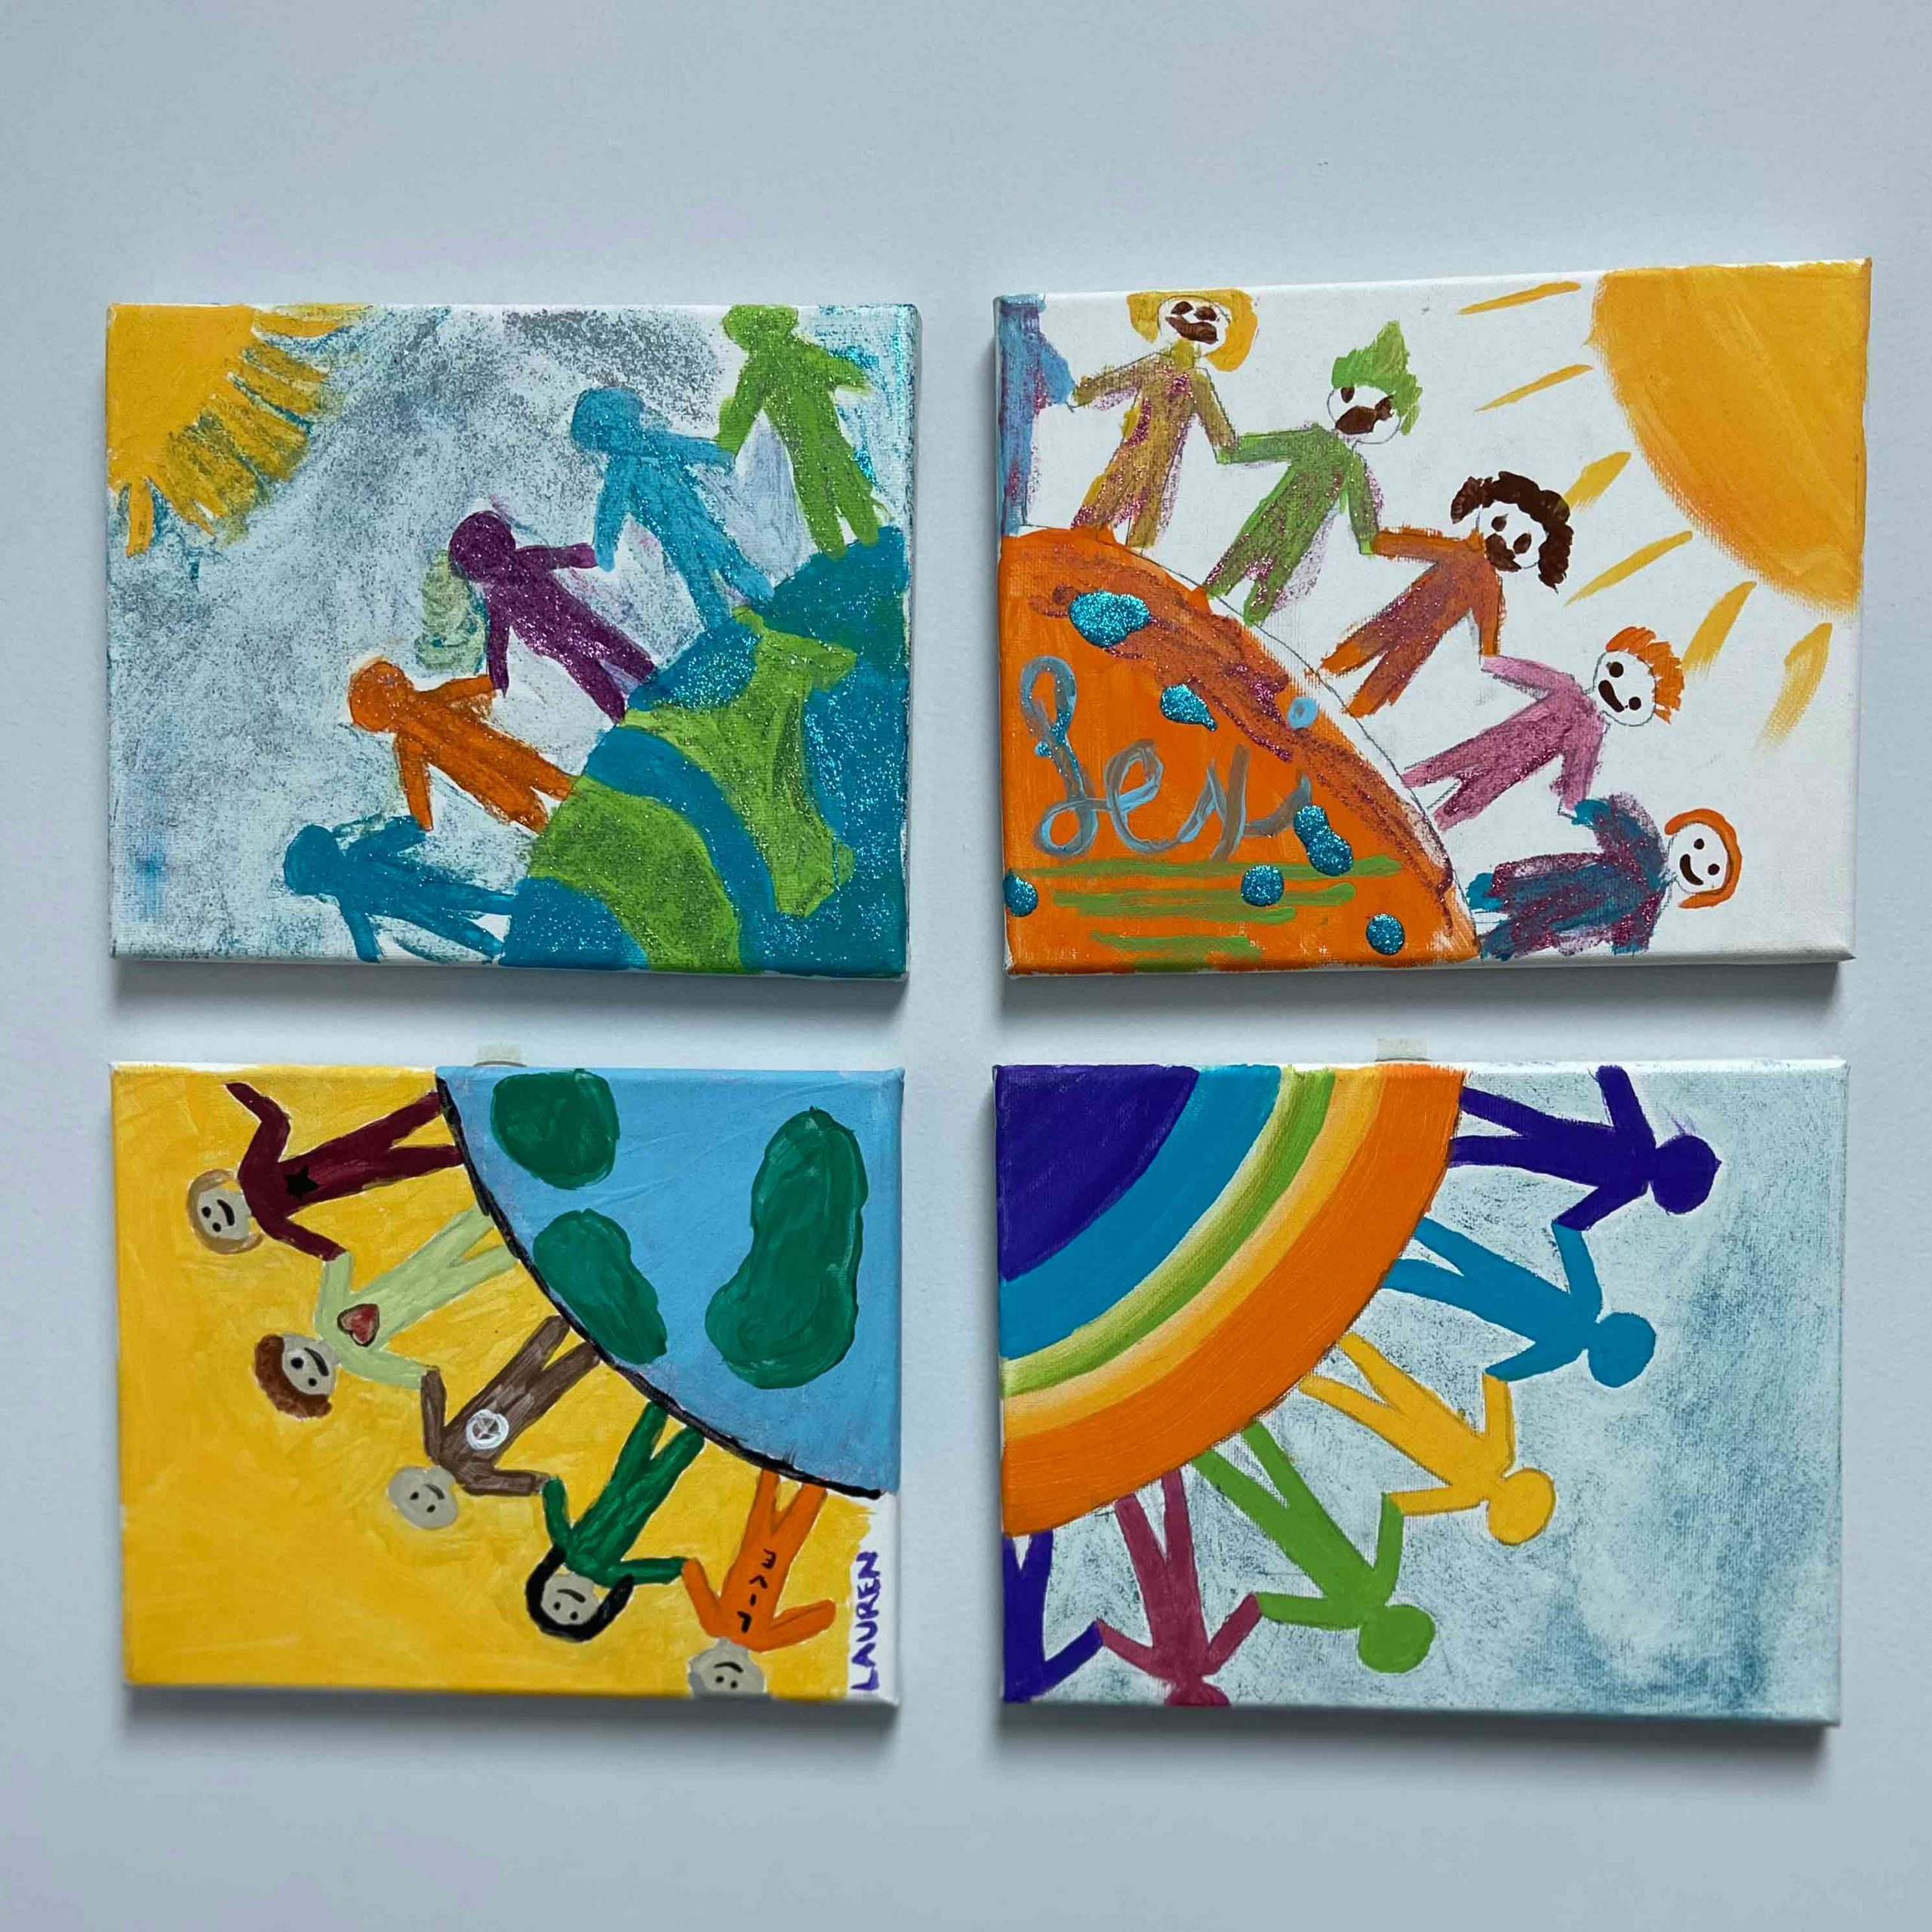 4 canvas painted with images of rainbows, suns, people, and the earth